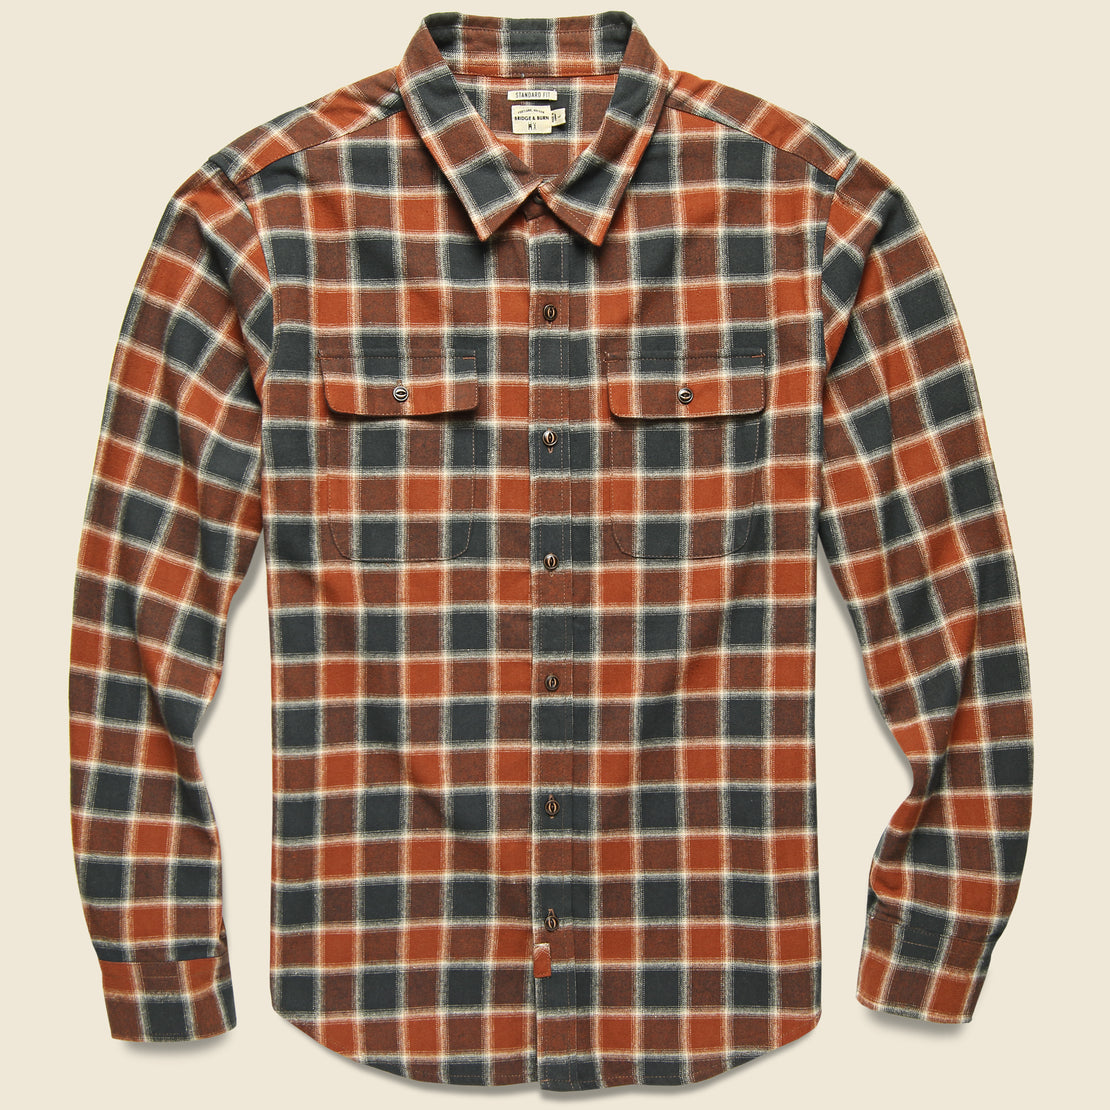 Bridge & Burn Bedford Flannel - Rust Charcoal Plaid